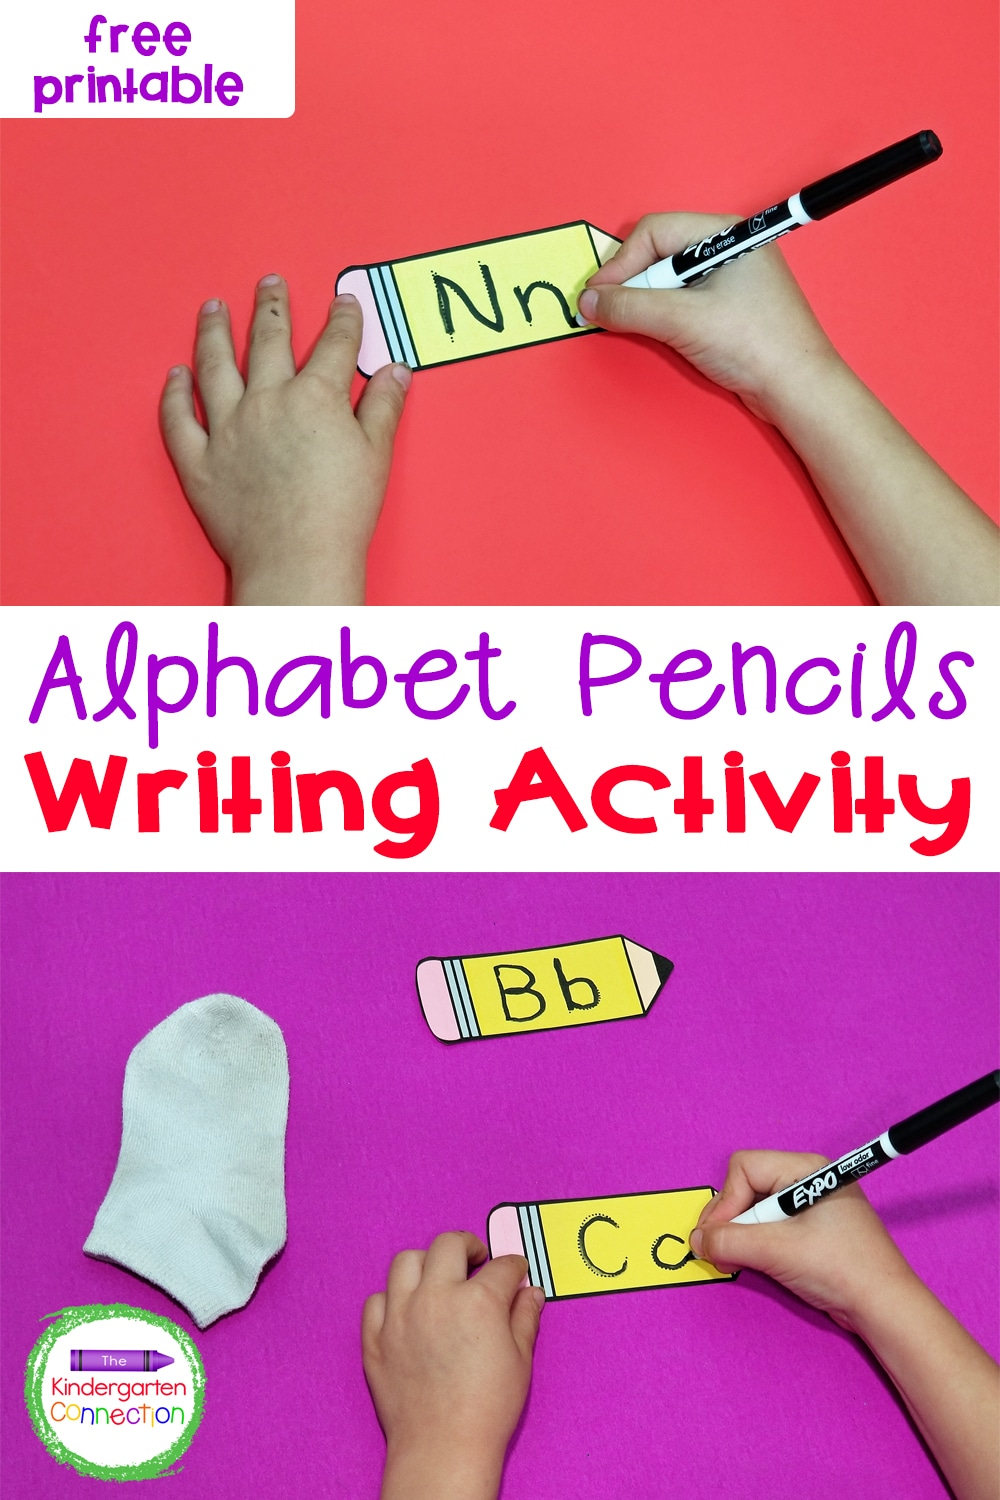 Letter writing practice is so much fun with these free Alphabet Writing Pencils! They're perfect for Pre-K and Kindergarten!